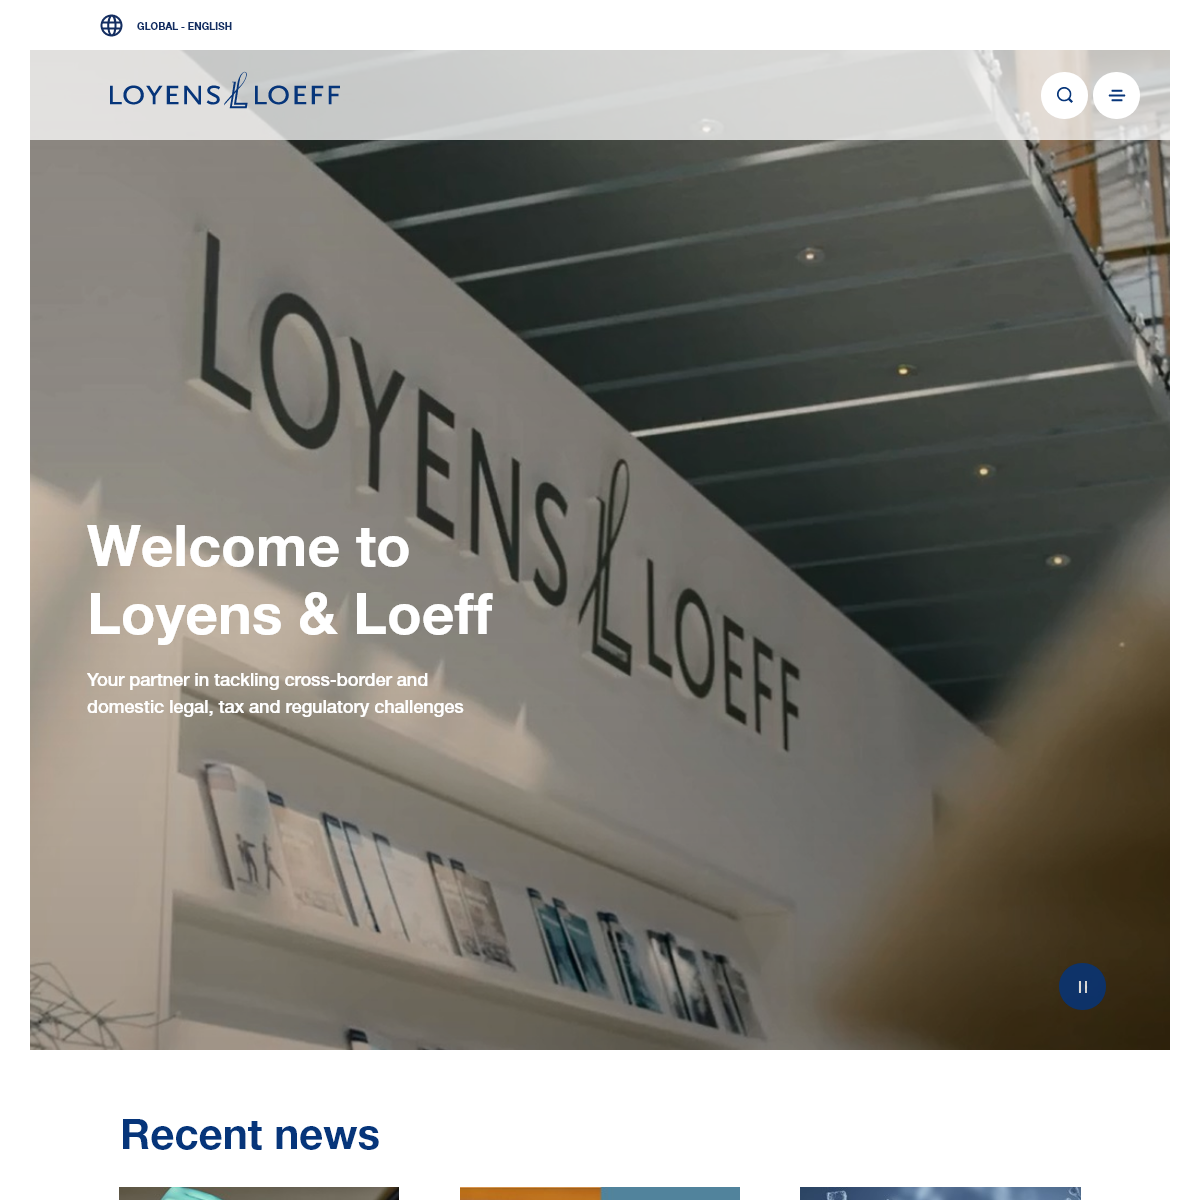 Integrated legal and tax advice - Loyens & Loeff